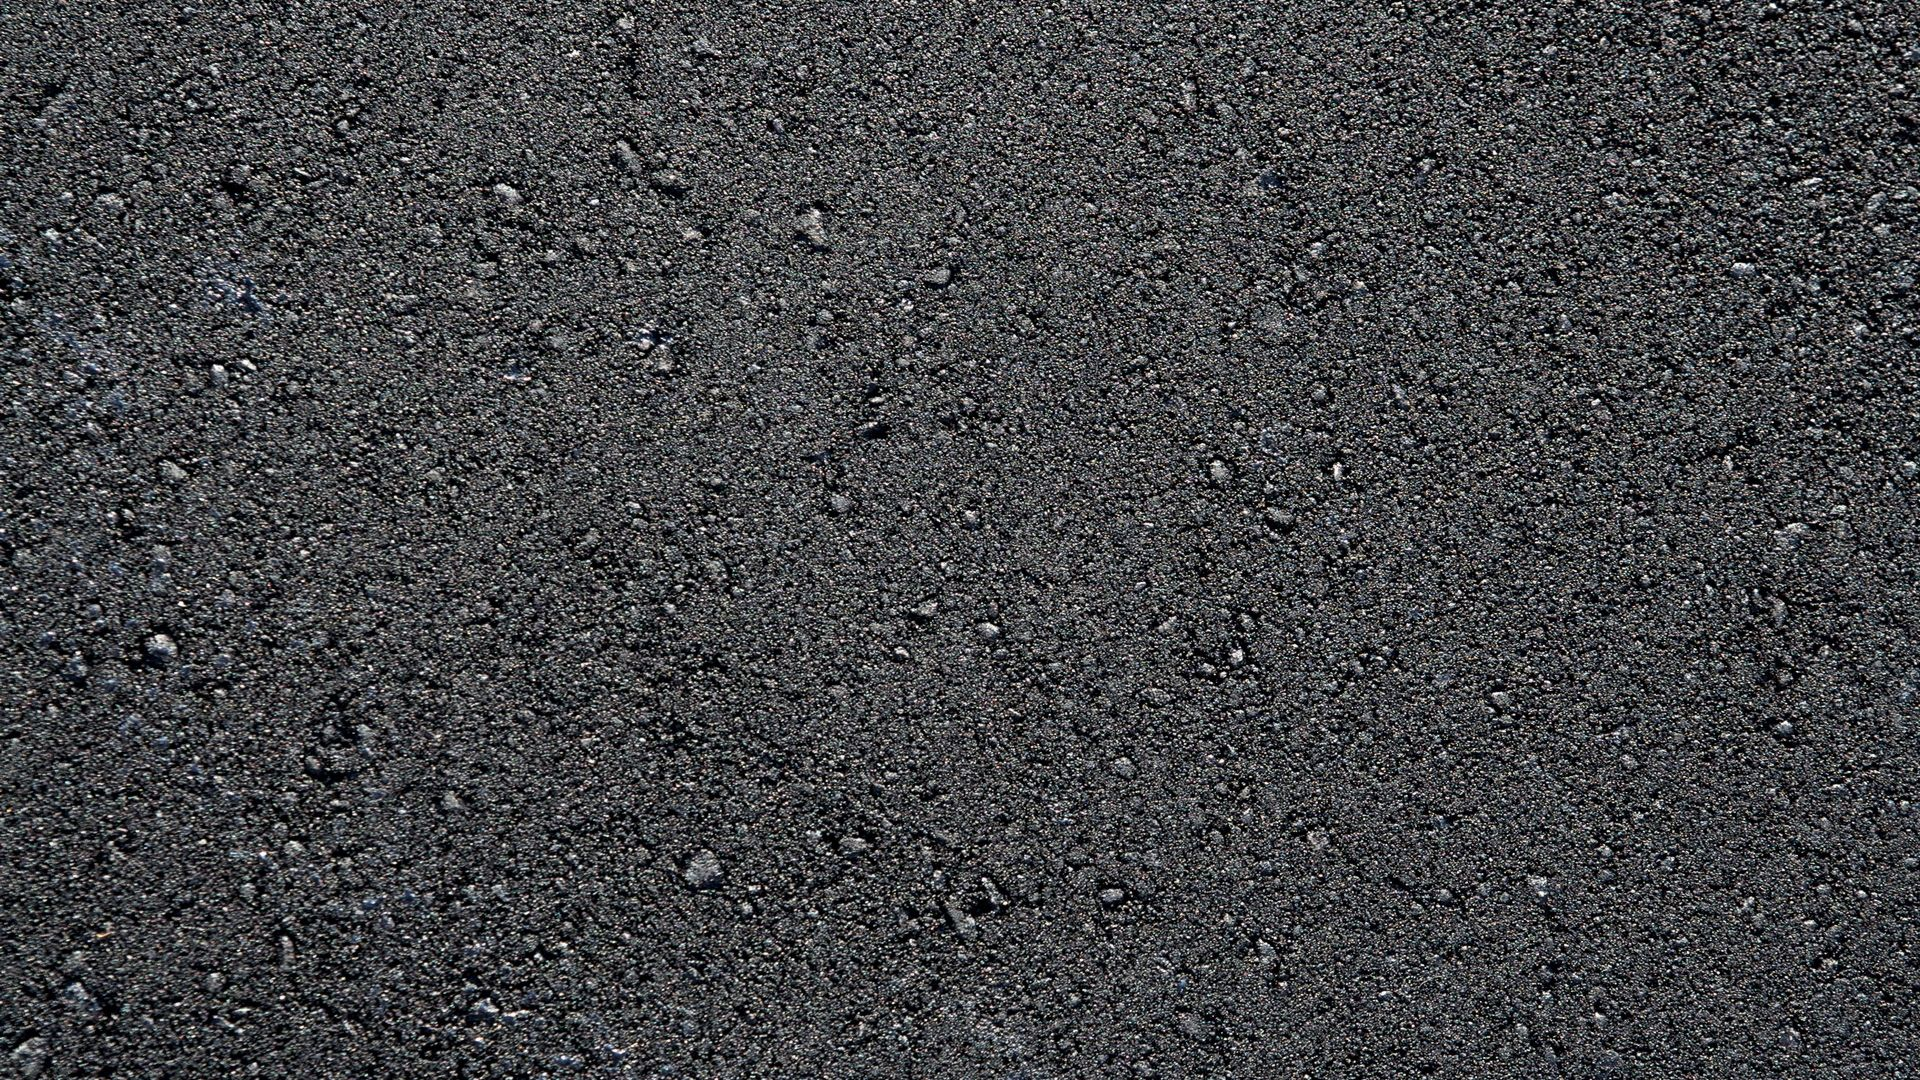 Black Road Asphalt Texture | Photo Texture & Background